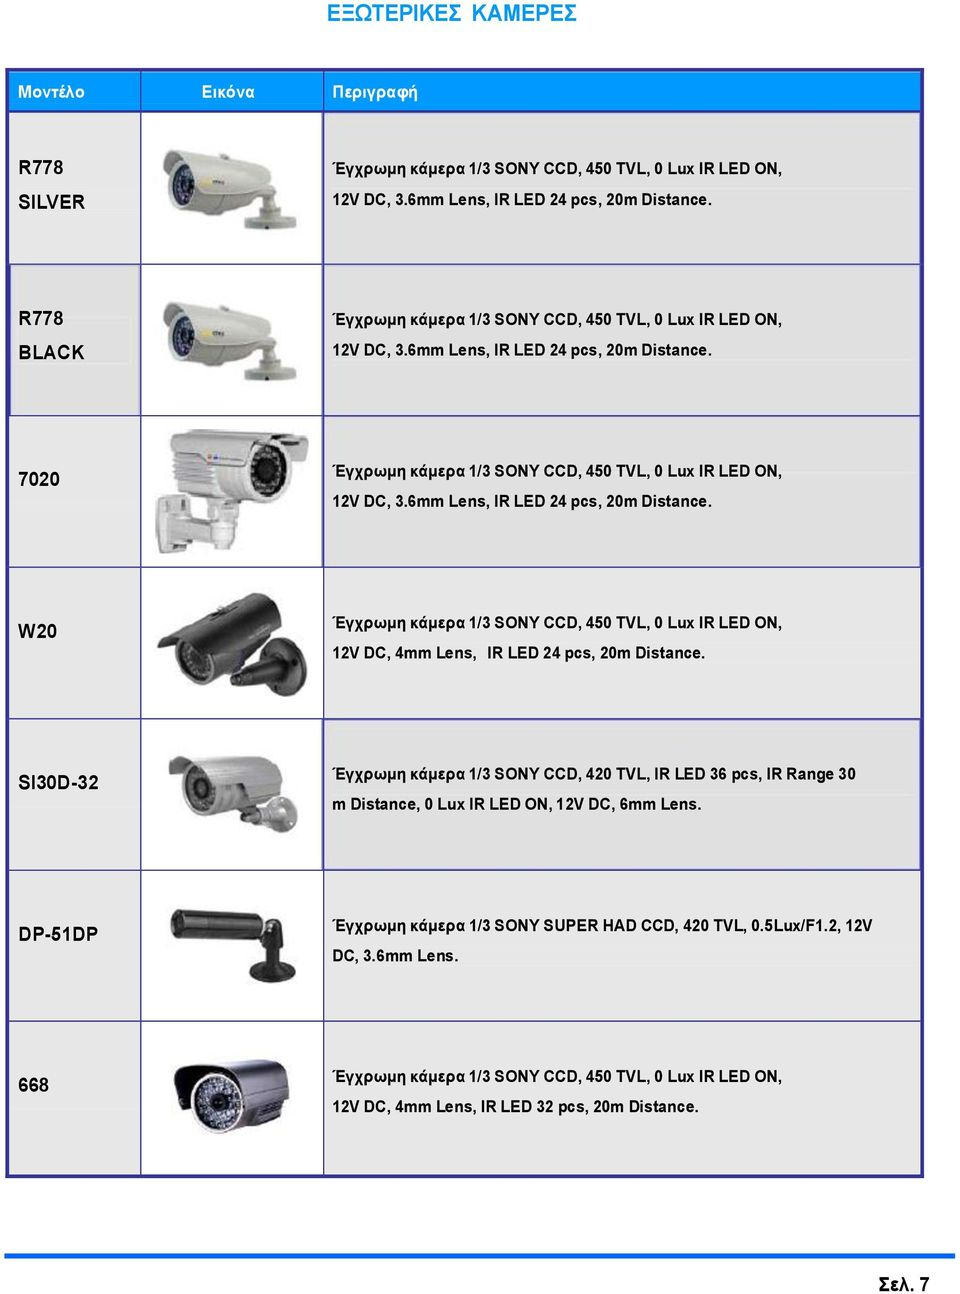 6mm Lens, IR LED 24 pcs, 20m Distance. W20 Έγρξσκε θάκεξα 1/3 SONY CCD, 450 TVL, 0 Lux IR LED ON, 12V DC, 4mm Lens, IR LED 24 pcs, 20m Distance.